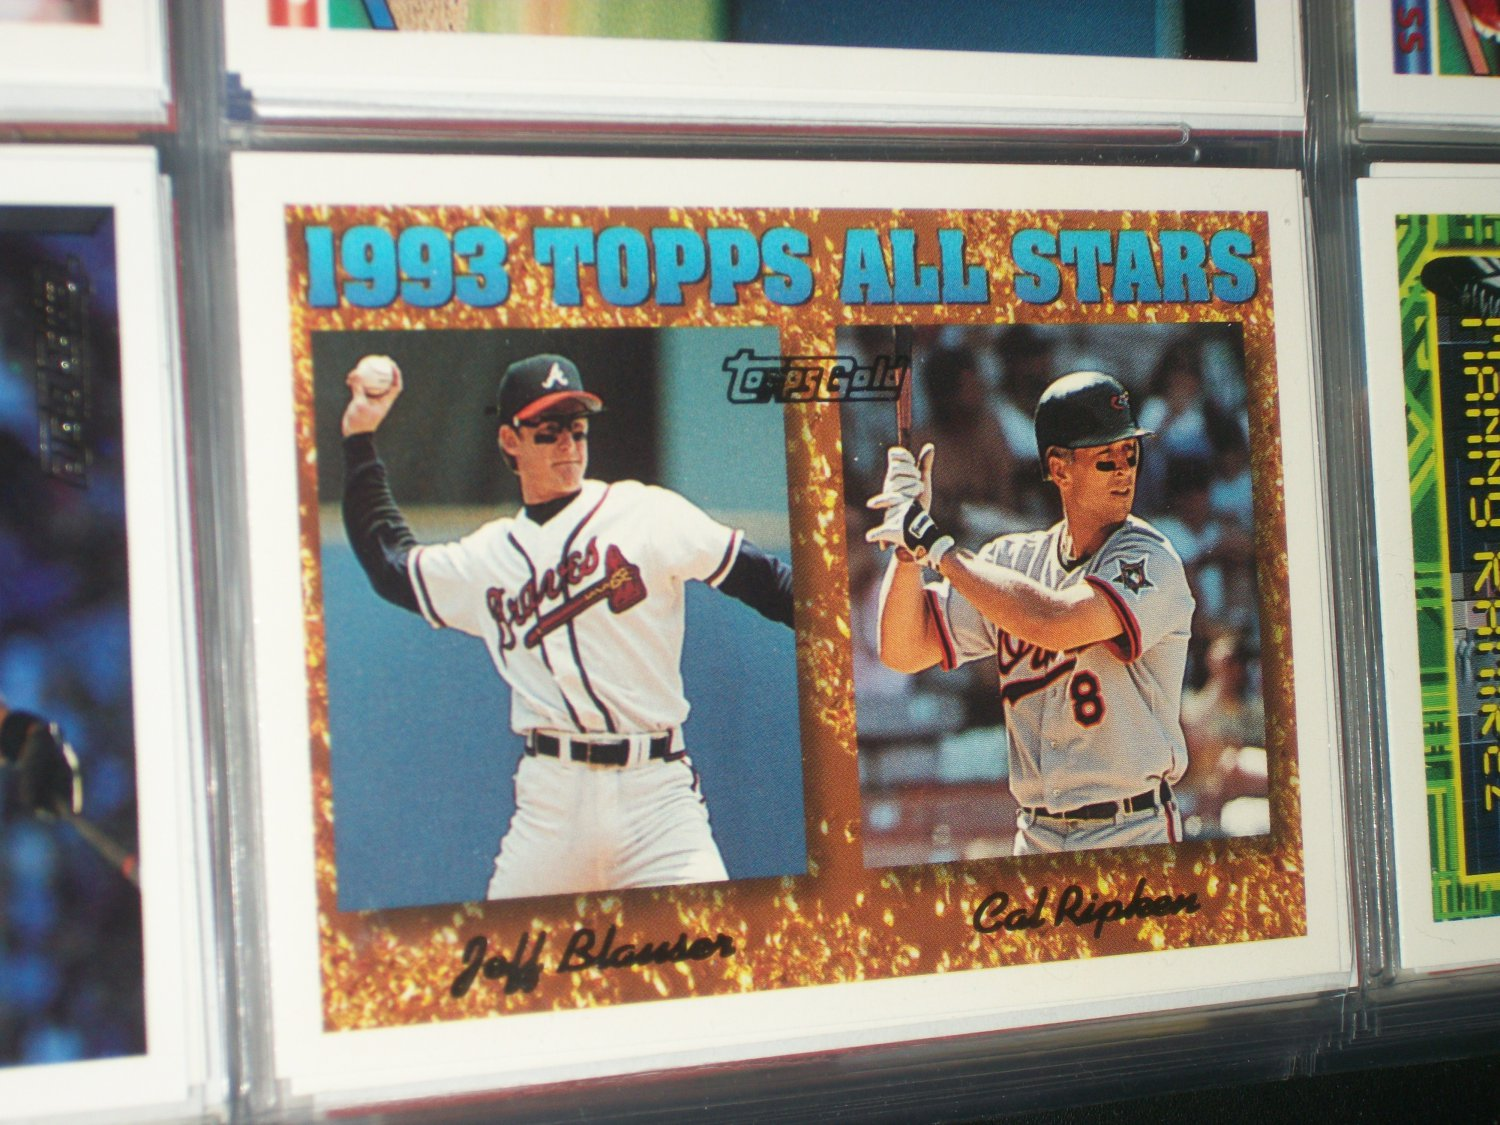 Cal Ripken/Jeff Blauser 93 Topps All-Star baseball card- Gold Insert